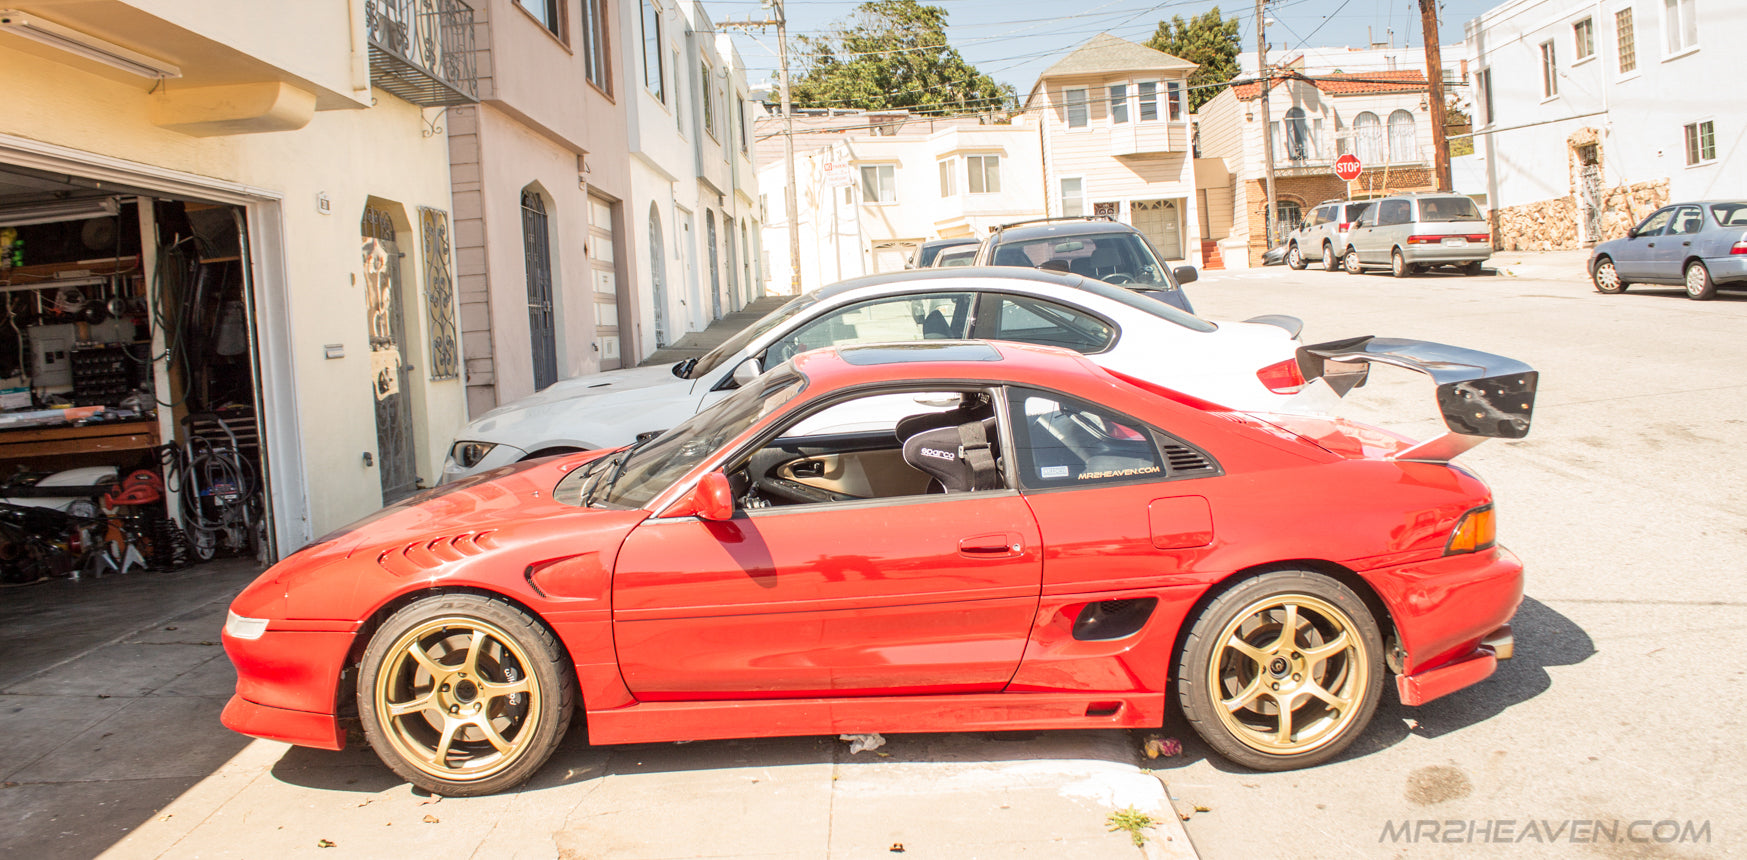 Mr2heaven Wilwood Front Big Brake Kit Coming Soon Mr2 Heaven Toyota Kits Sw20 Rear Bracket For 93 Caliper 13 Larger